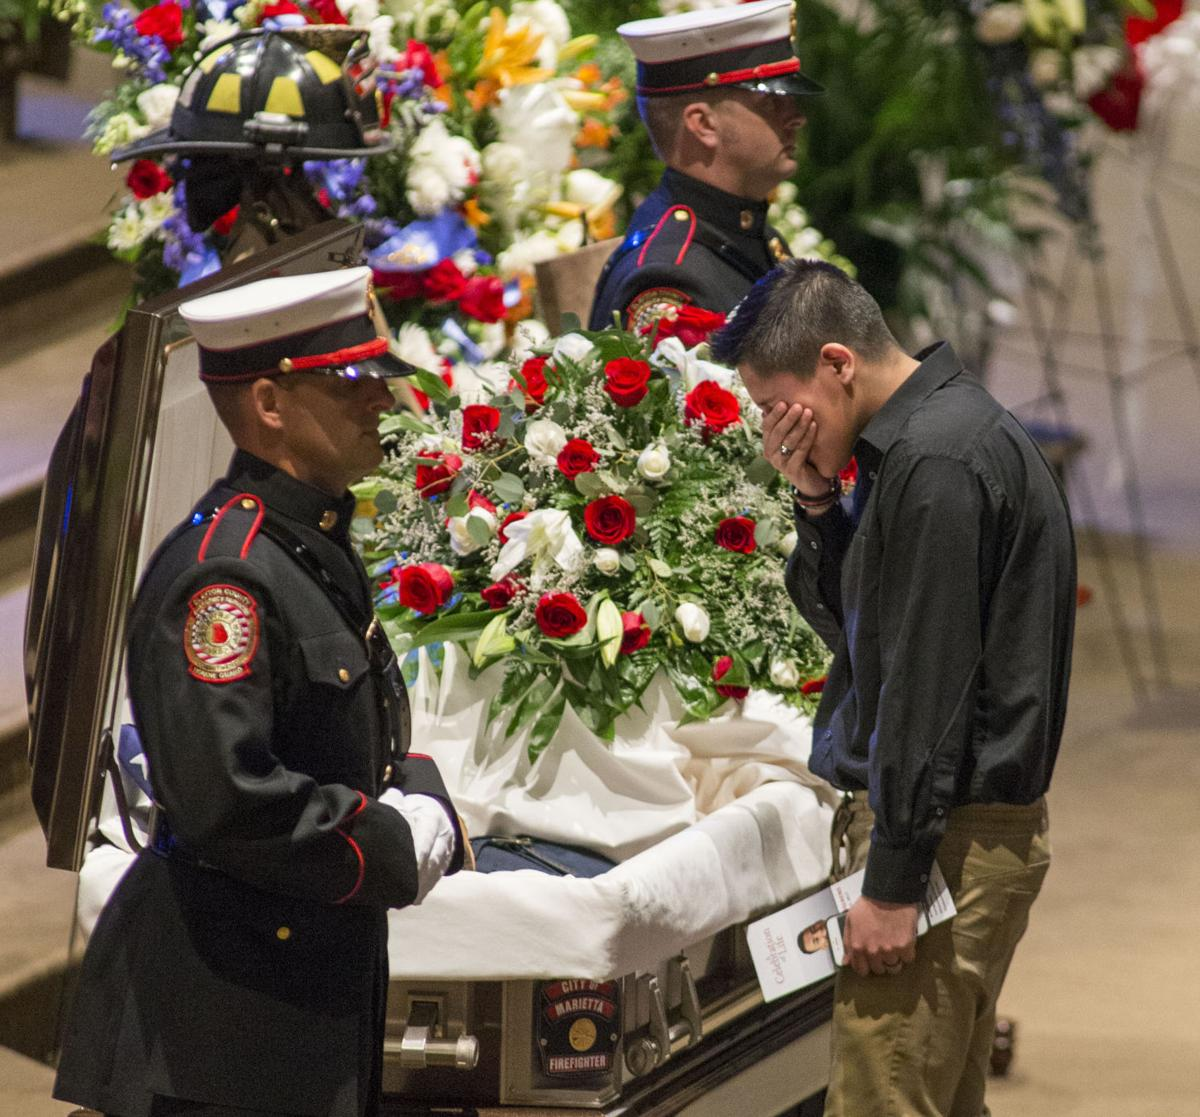 Bethel University Online >> Marietta Firefighter Ron C. Herens Celebrated and Laid to Rest Wednesday. | Multimedia ...